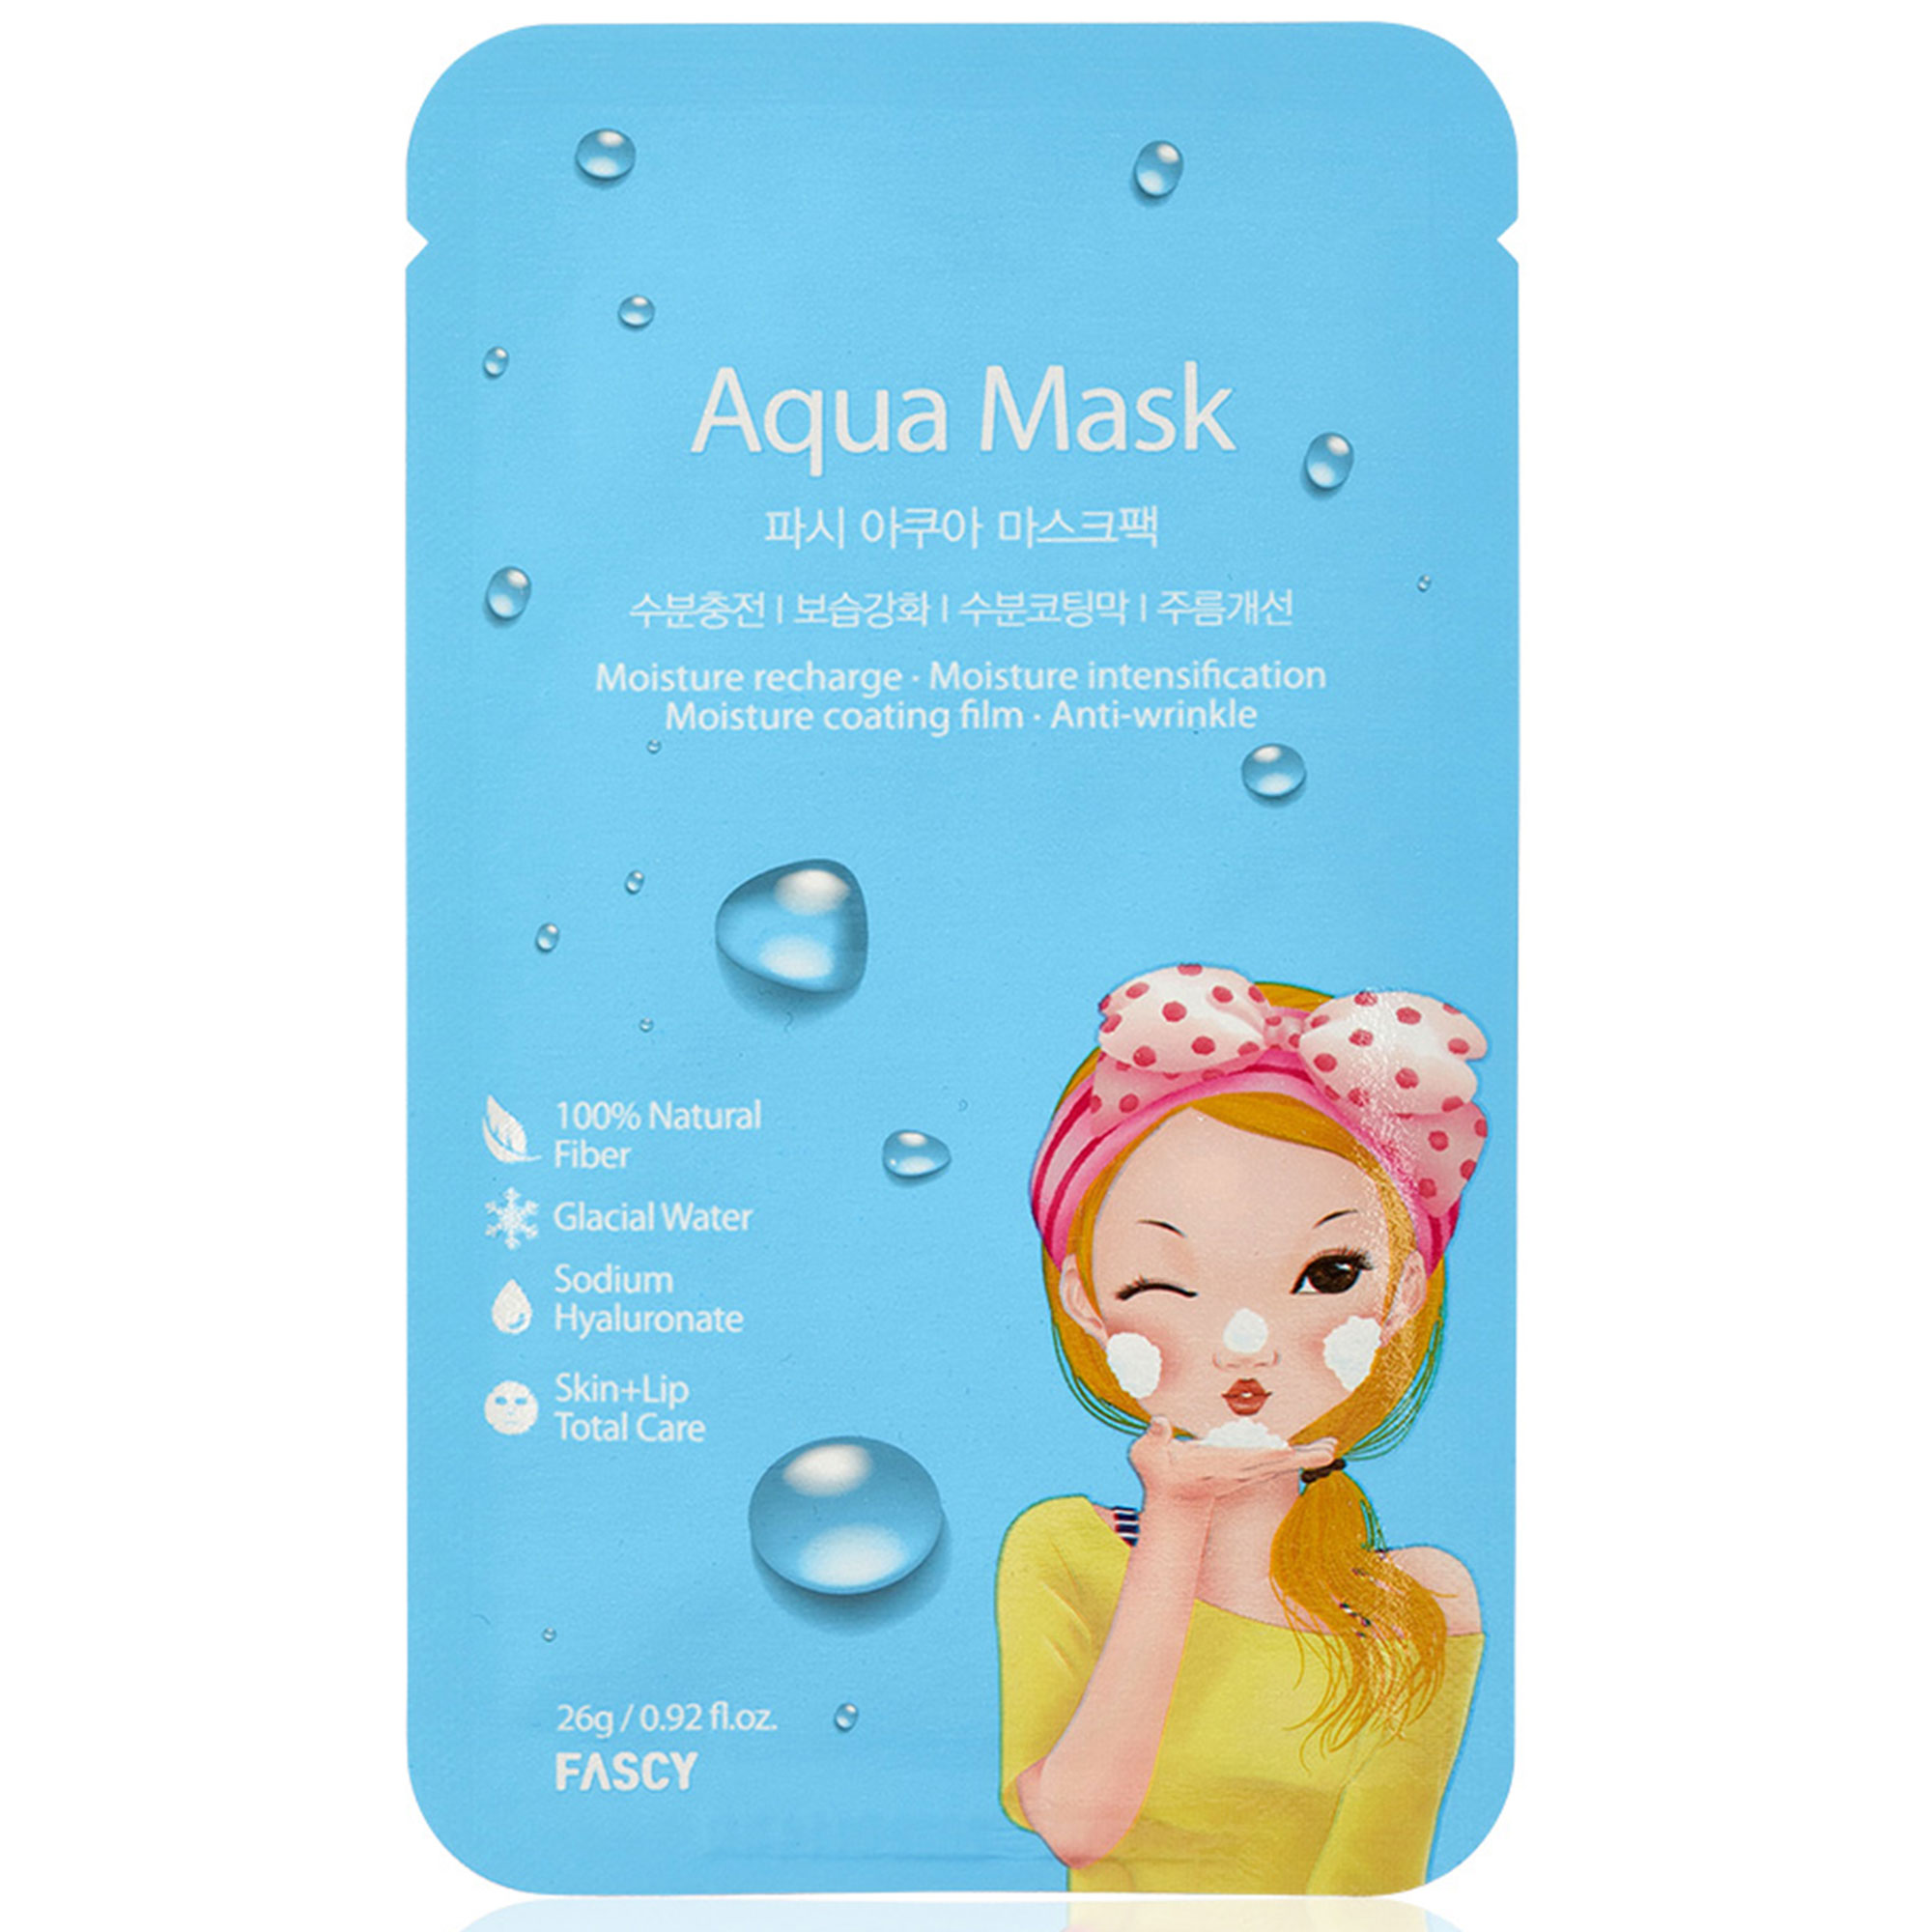 skyblue mask, korean mask,hydrating mask,